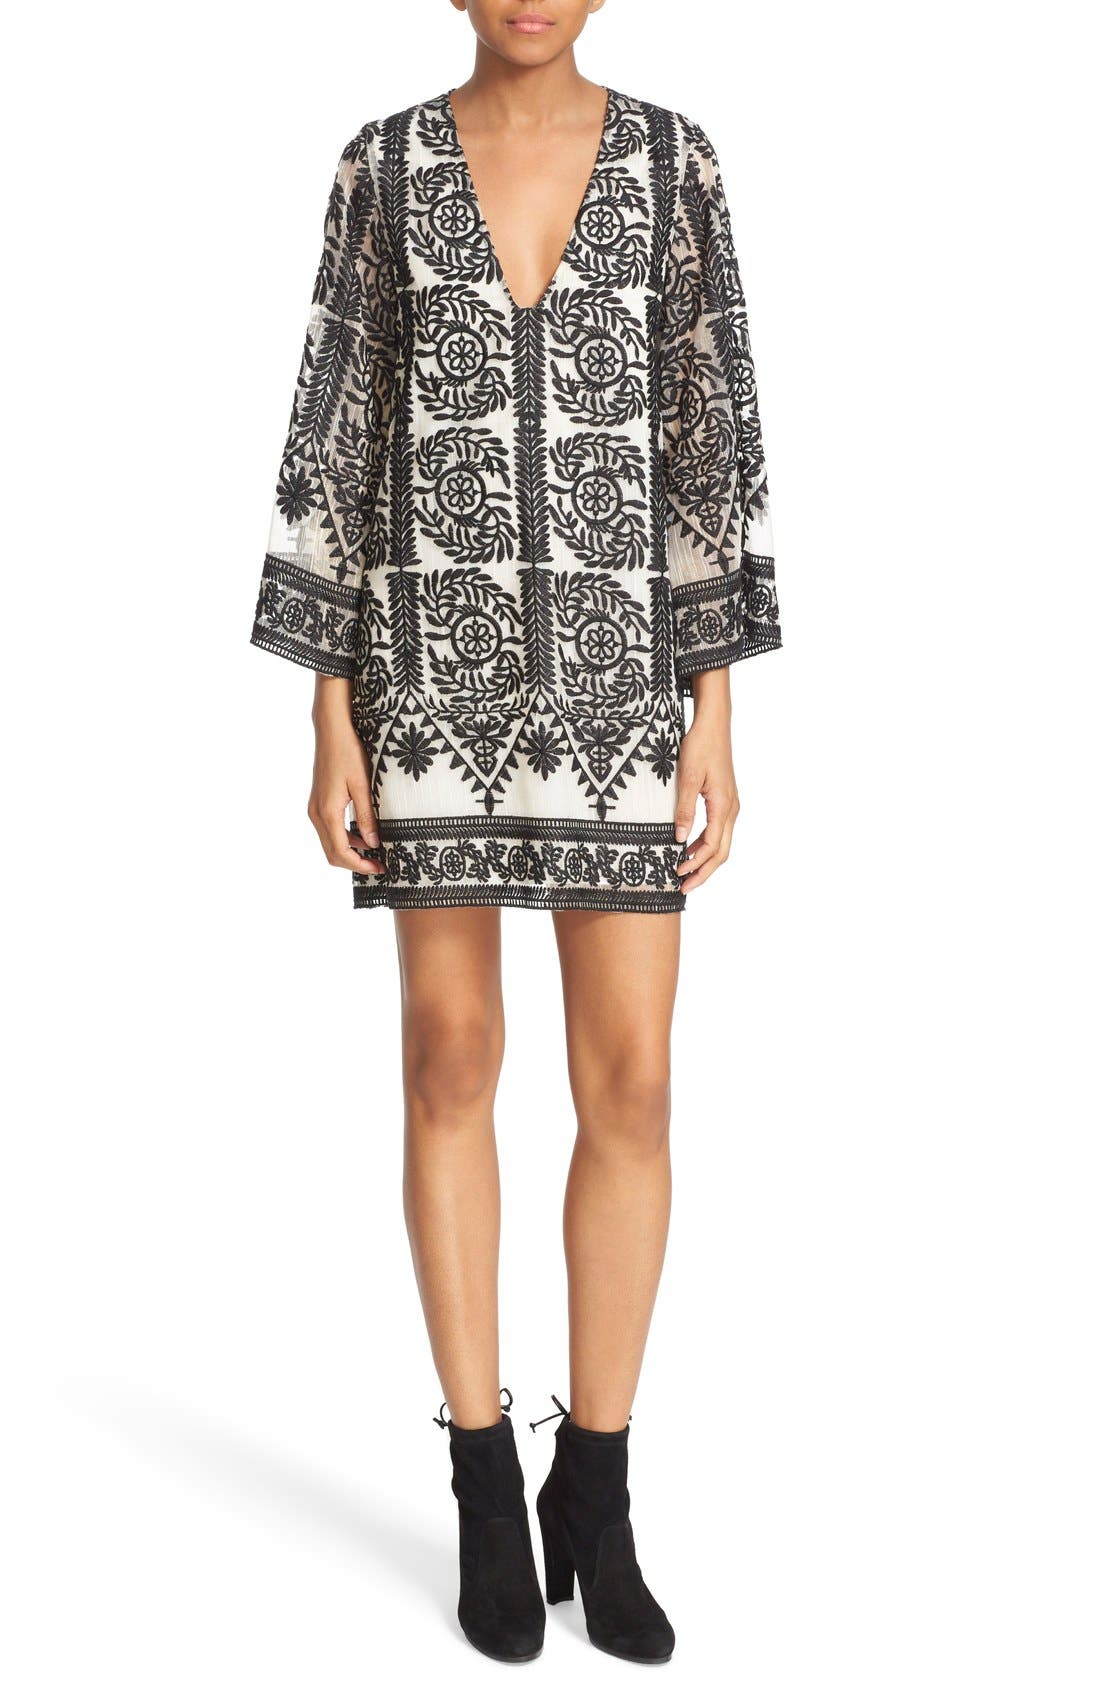 ALICE + OLIVIA 'Katt' Print V-Neck Caftan Minidress, Main, color, 001